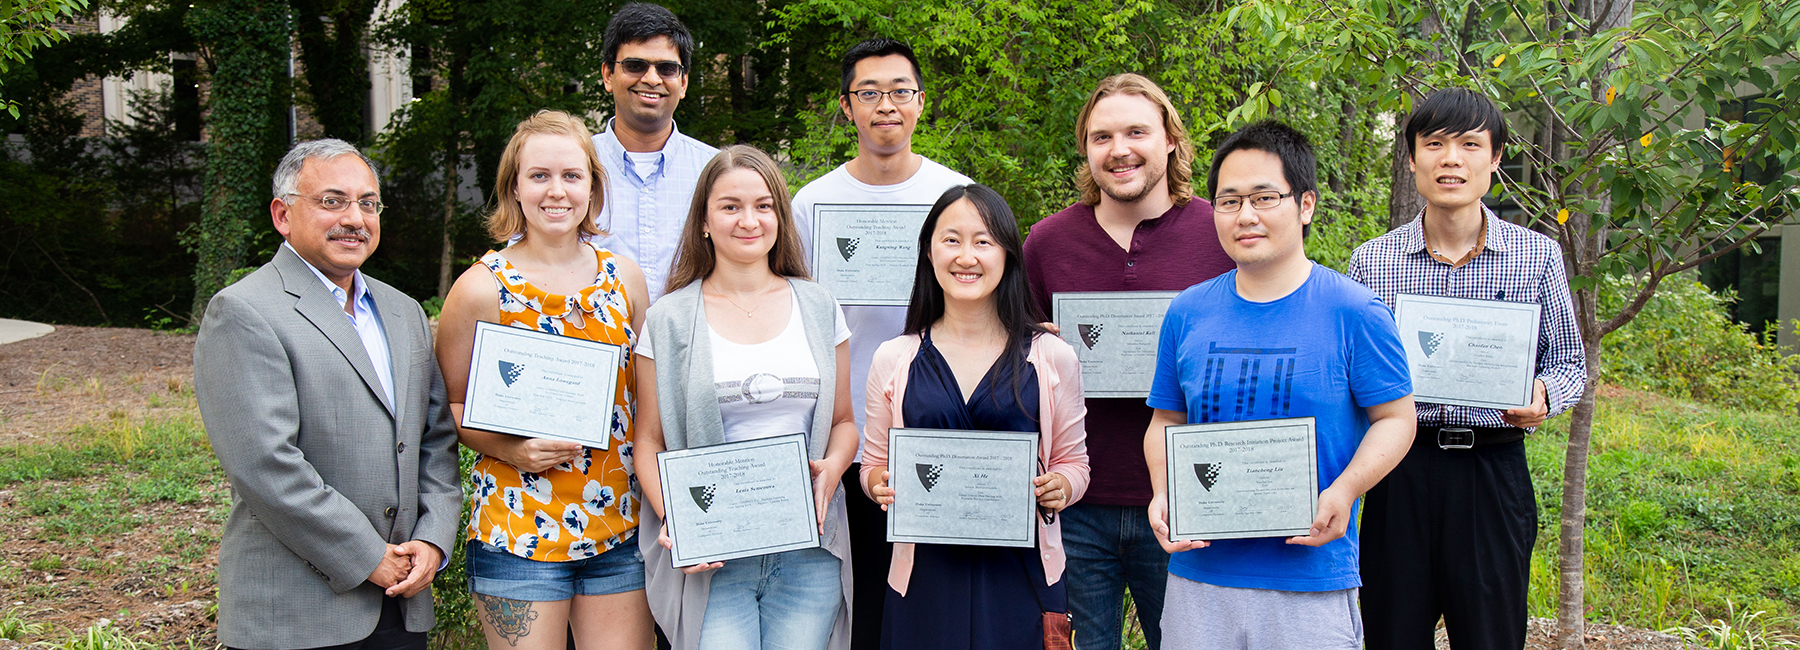 Grad Student Award Recipients 2018